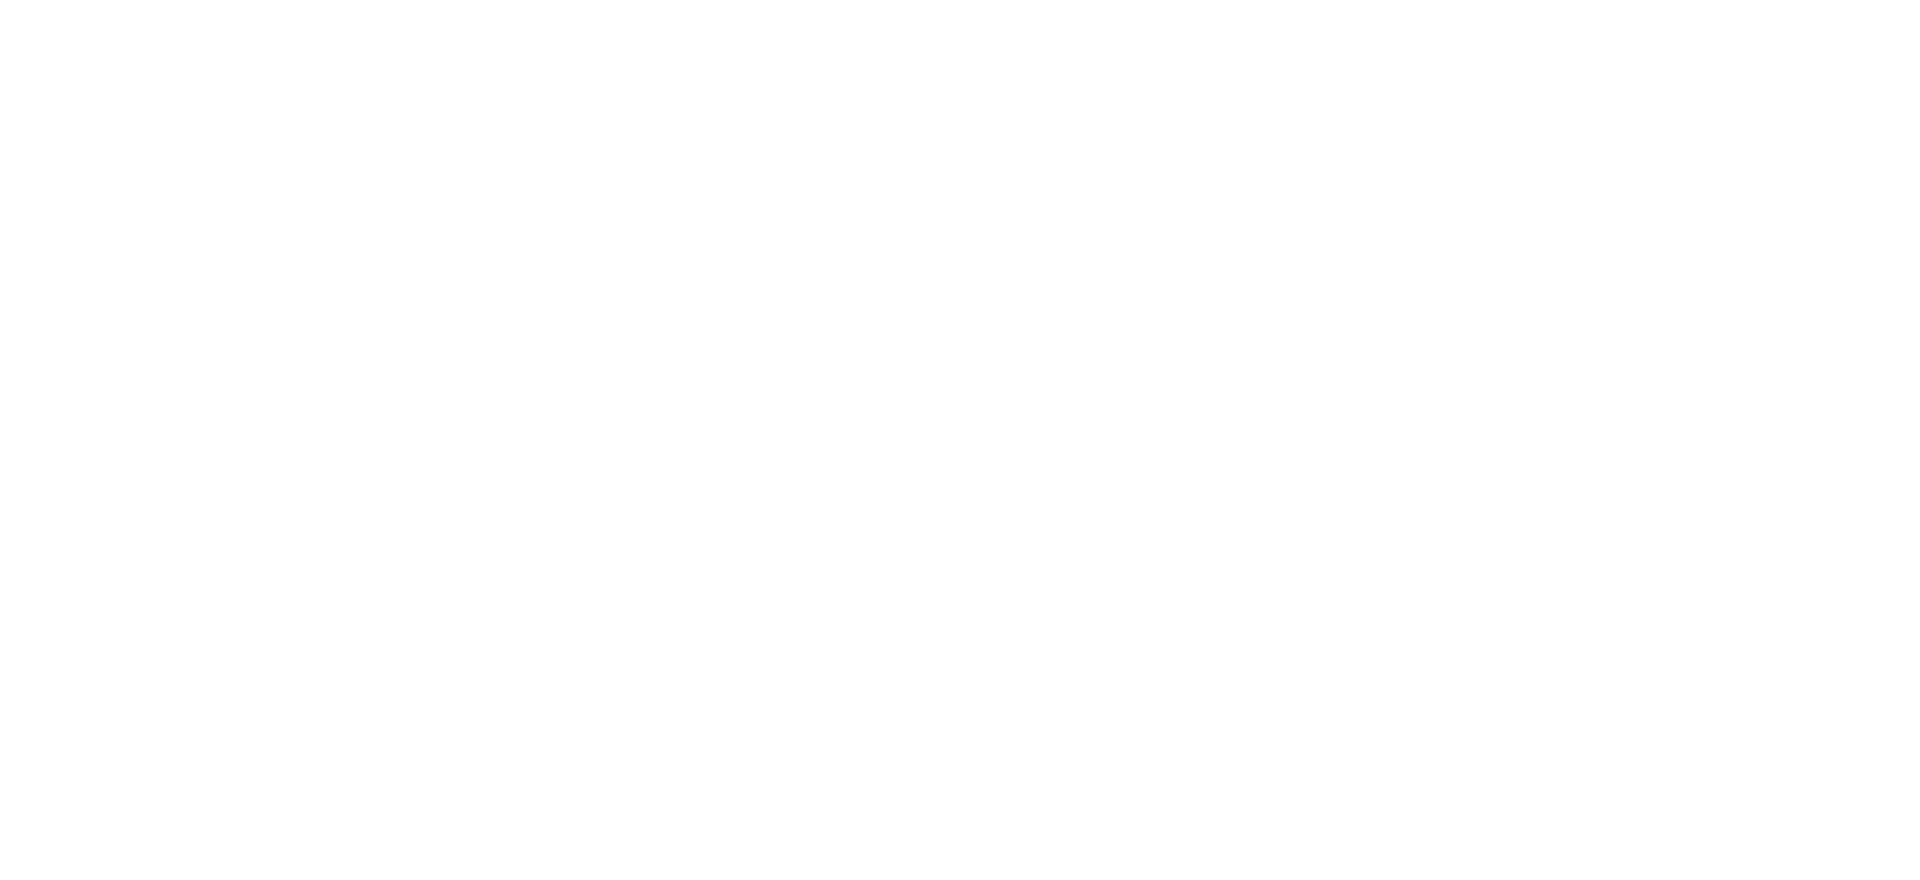 master-of-design-title